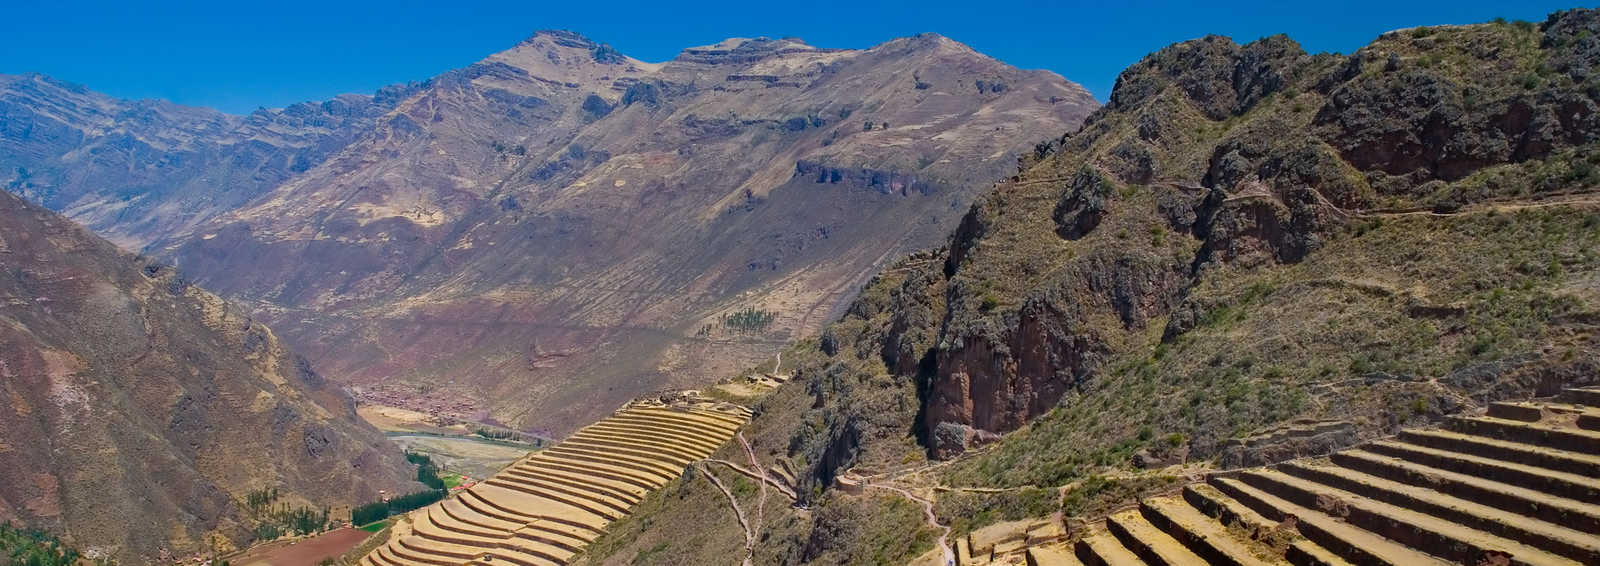 Terraces at Pisac in the Sacred Valley, Peru